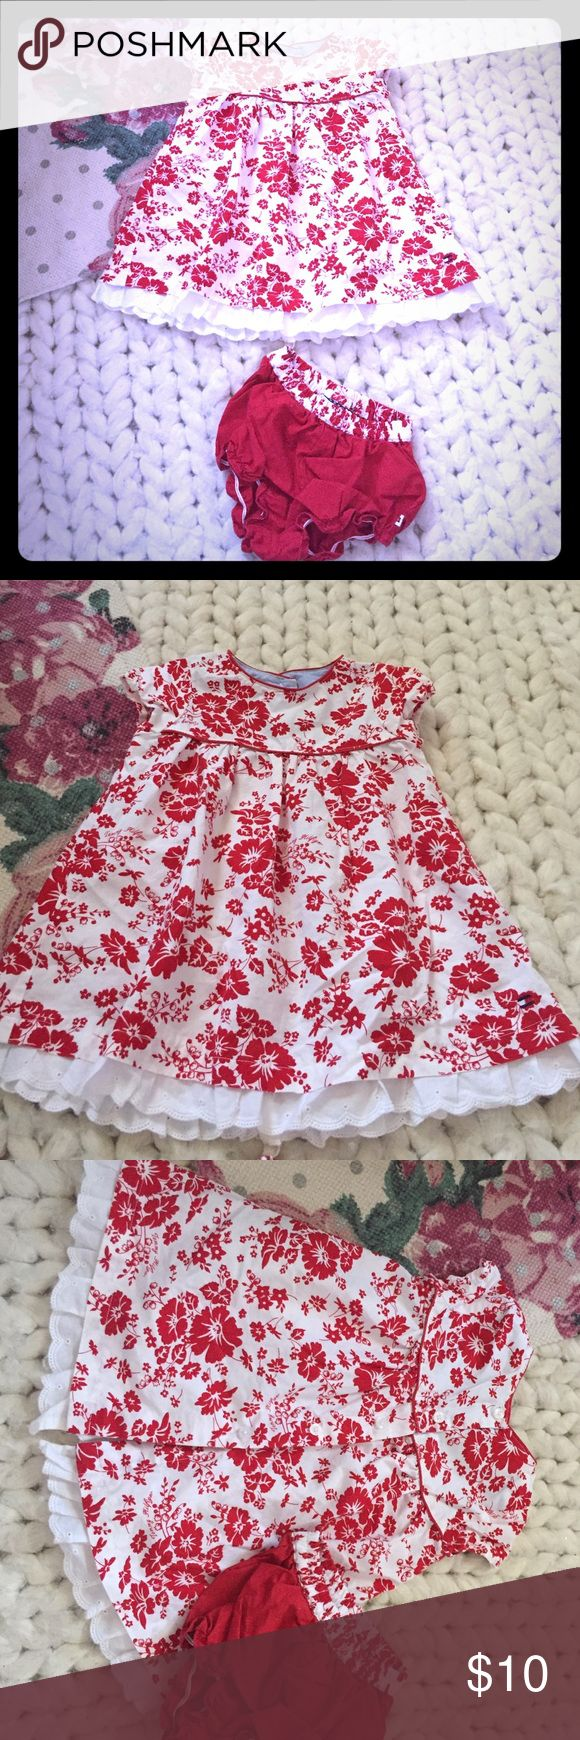 Red/White Floral Trapeze Buttonback Dress Adorable red and white floral dress by Tommy Hilfiger; button back, cap sleeves, eyelet detailing at the hem and sweet matching diaper cover red under pants with contrast trim. Perfect condition. 3/6 months; my tiny preemie didn't reach the right size until those cold winter months. This outfit is too cute to resist! Tommy Hilfiger Dresses Casual